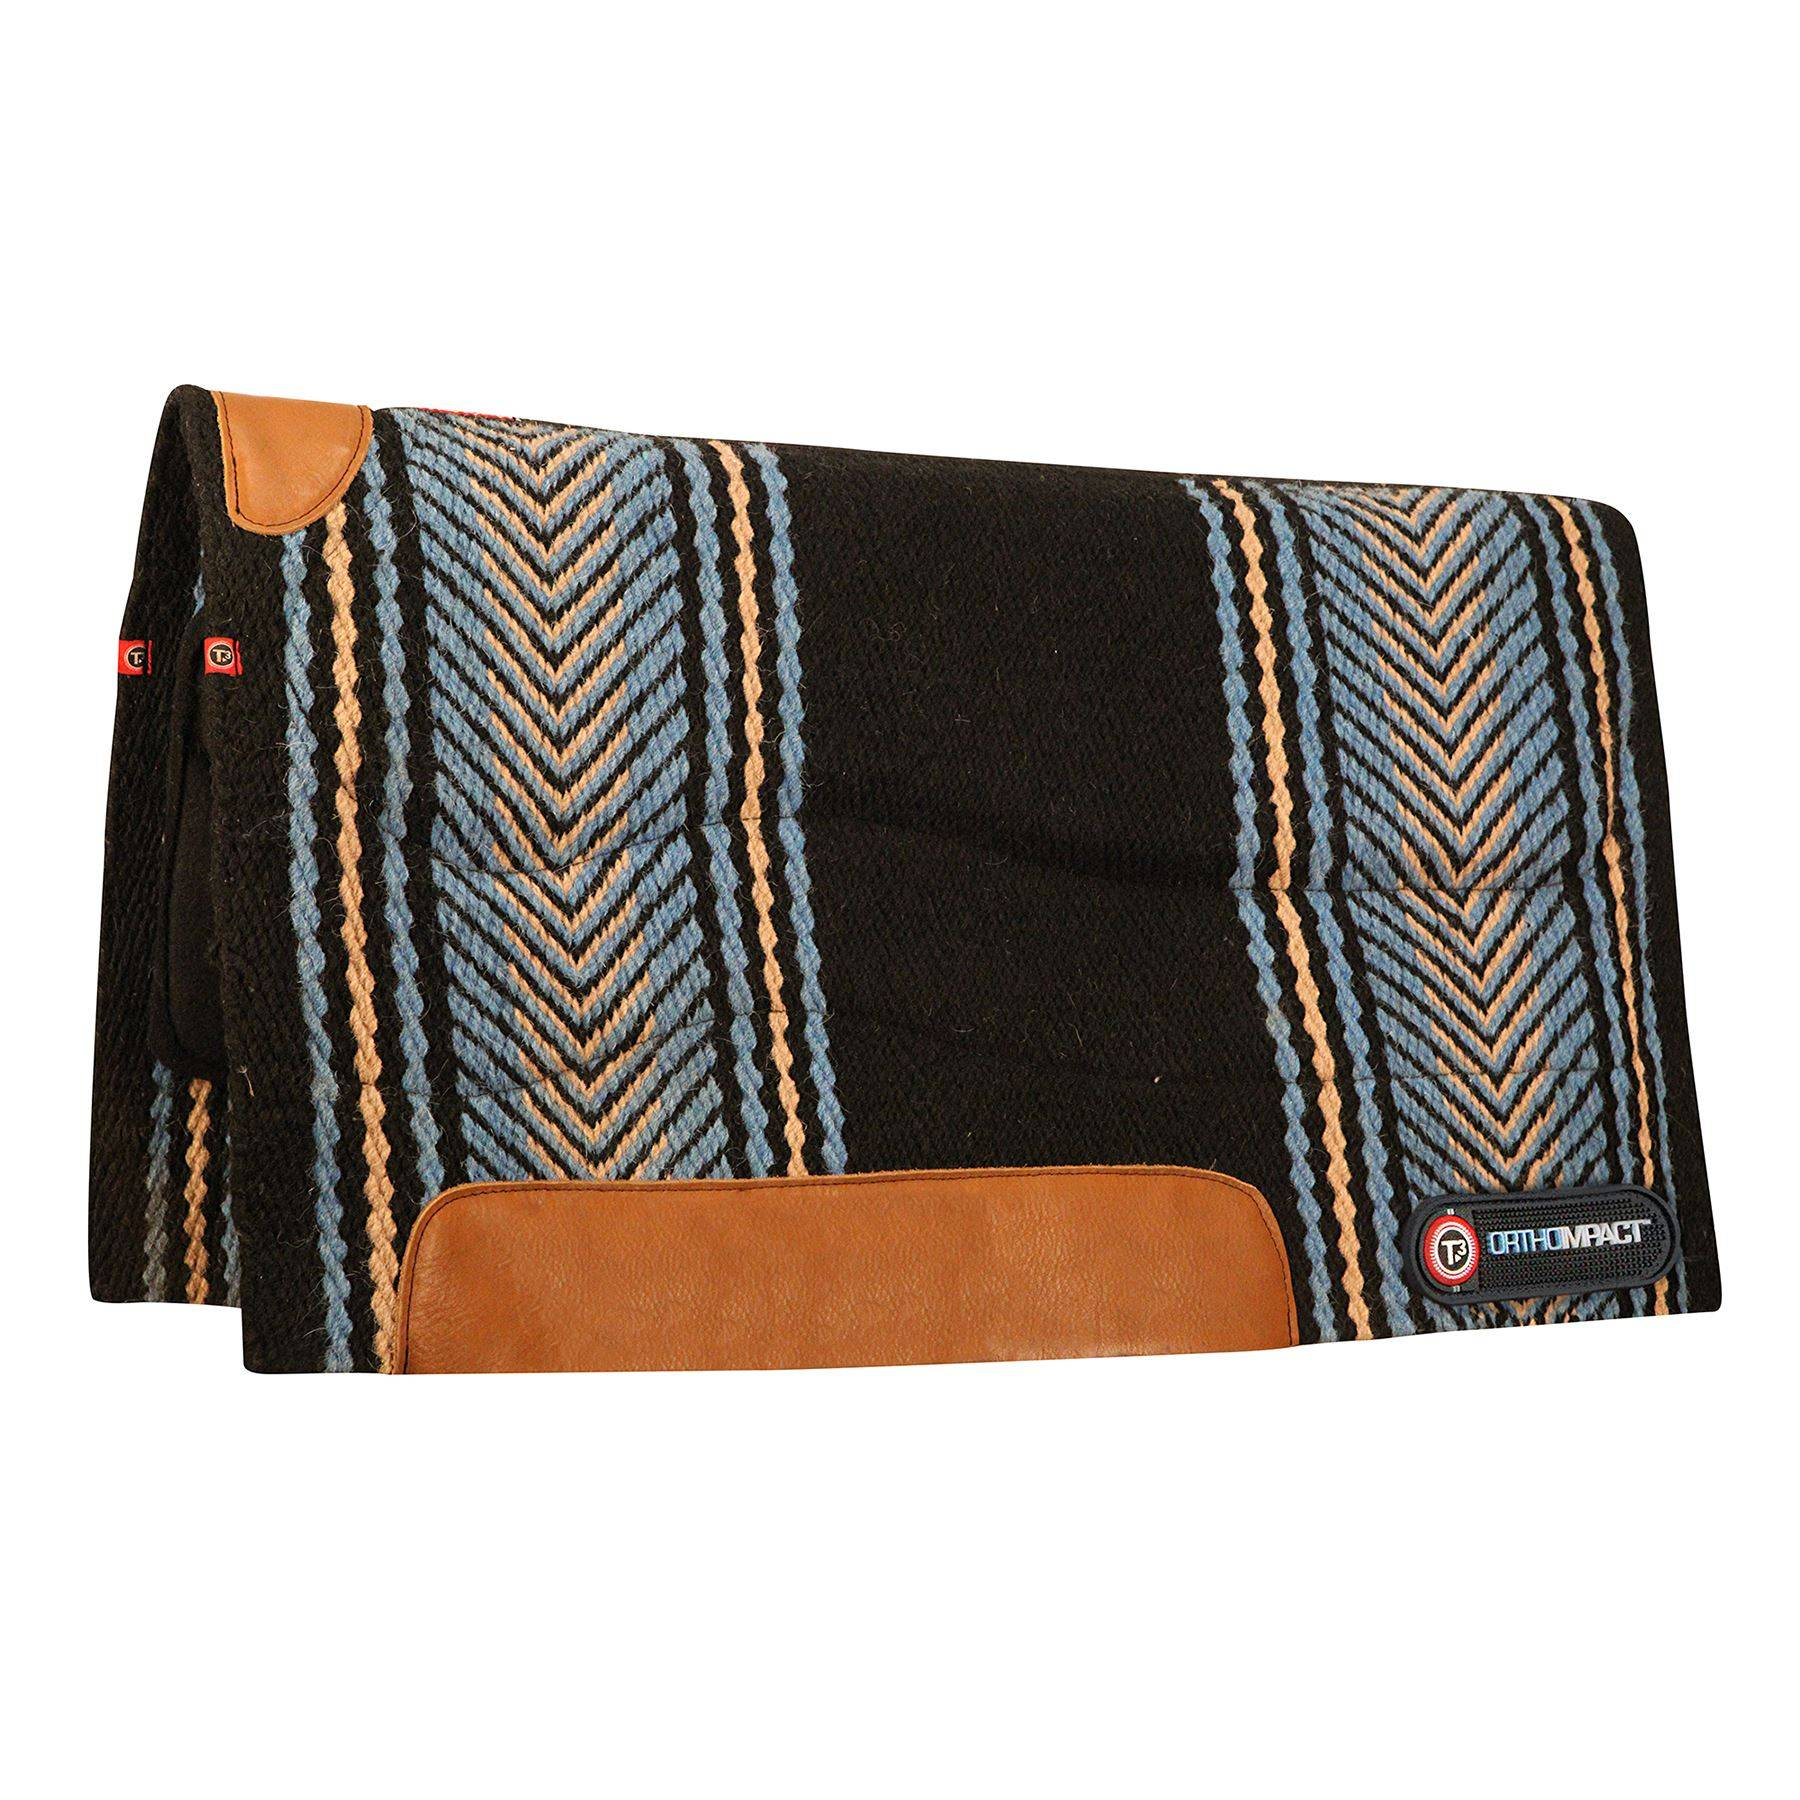 T3 La Mancha Woven Performance Pad with Ortho-Impact™